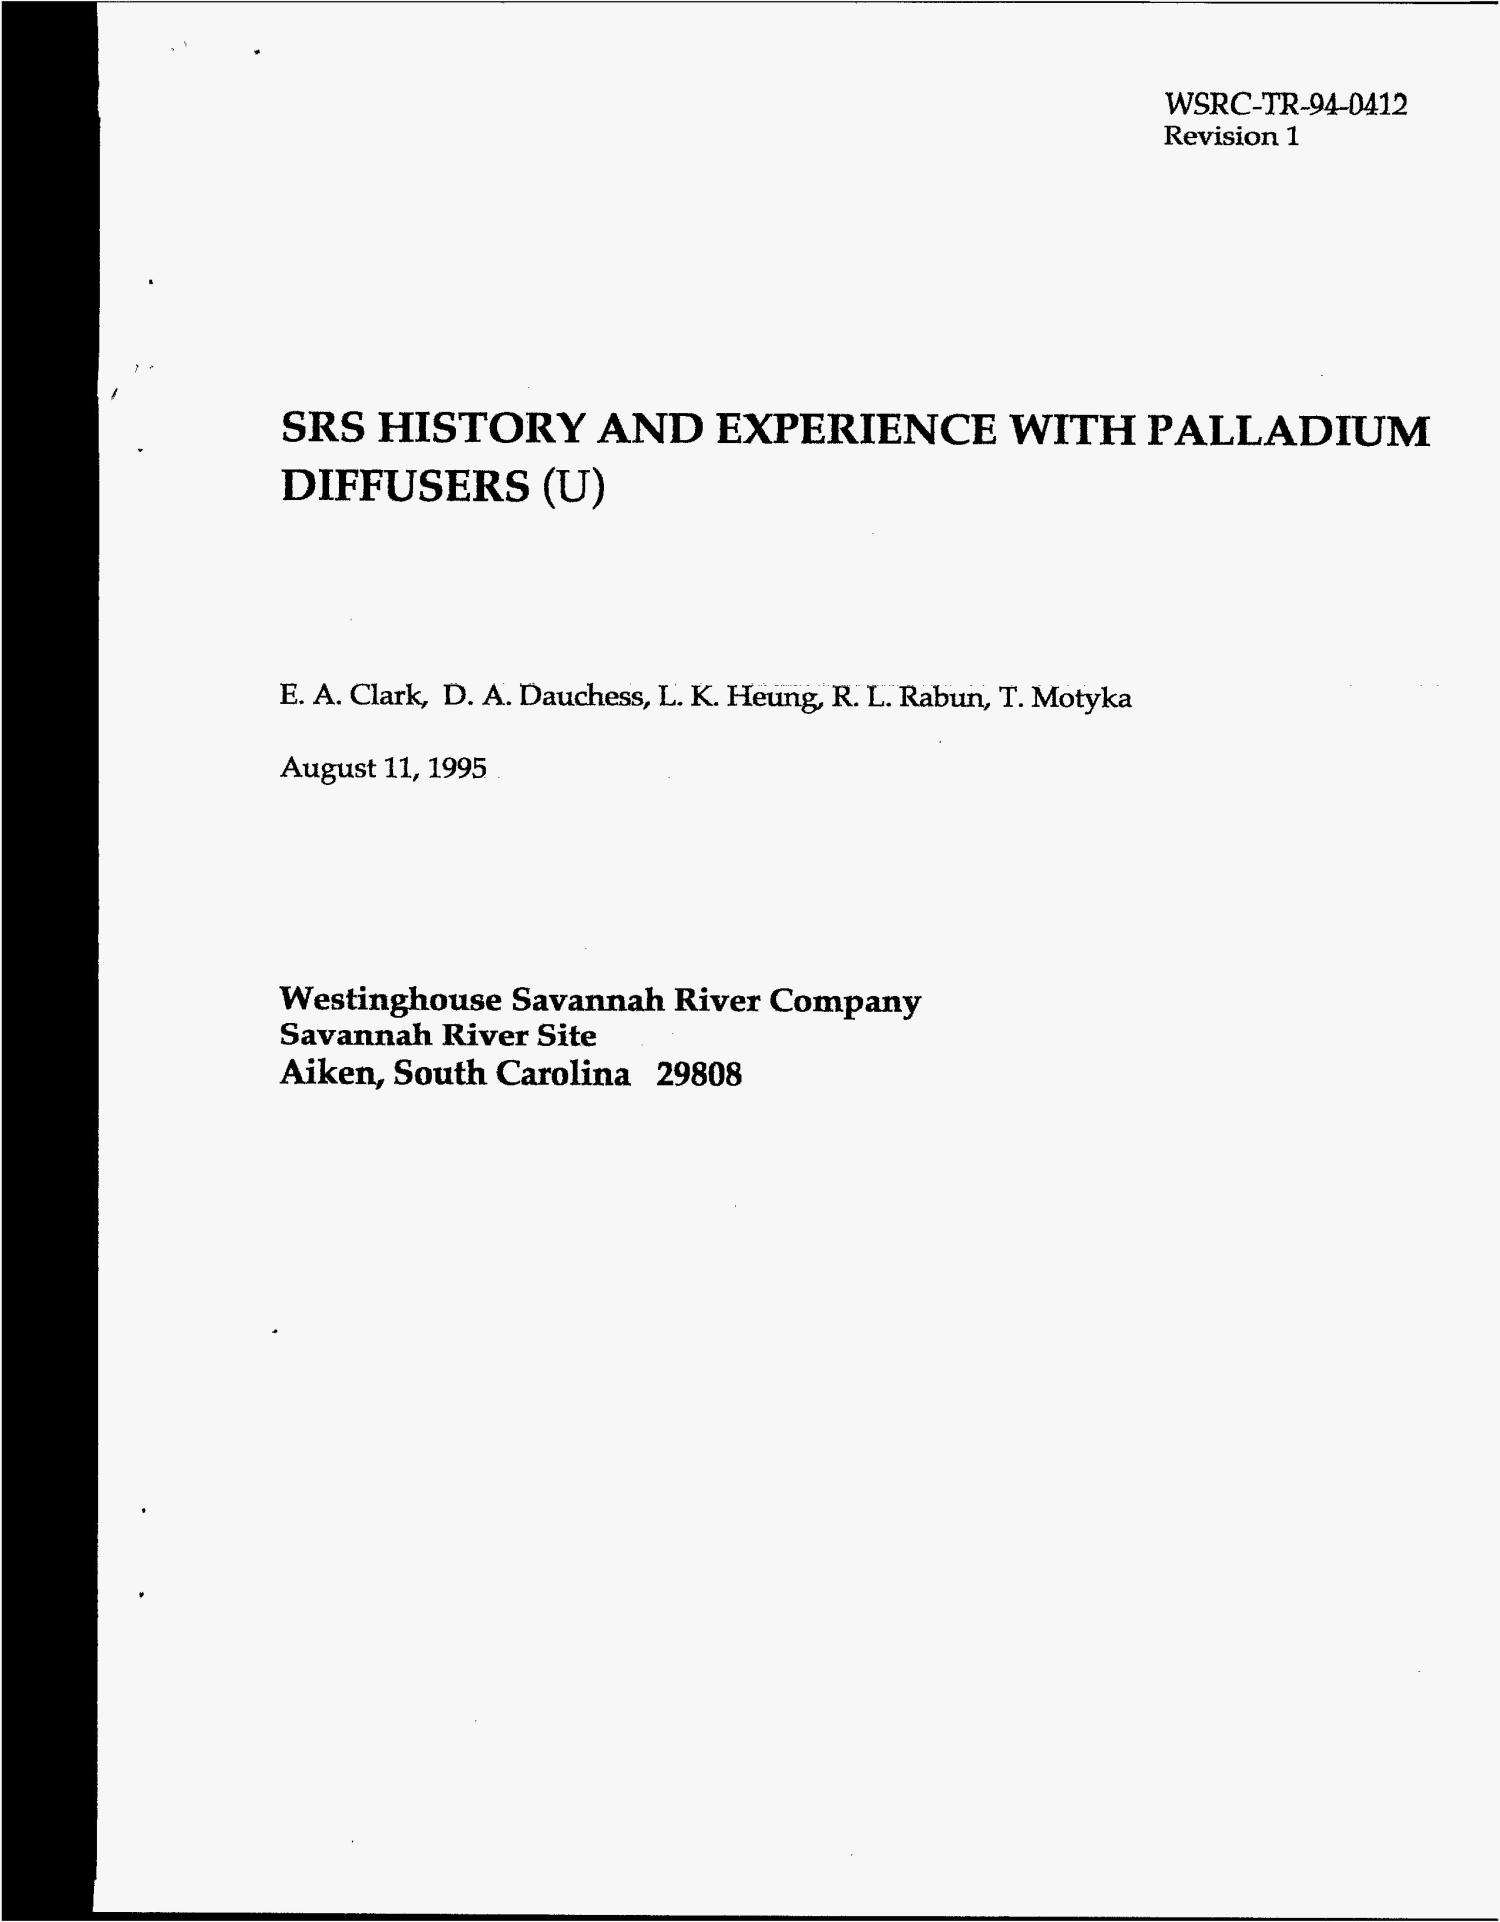 SRS history and experience with palladium diffusers. Revision 1                                                                                                      [Sequence #]: 1 of 26